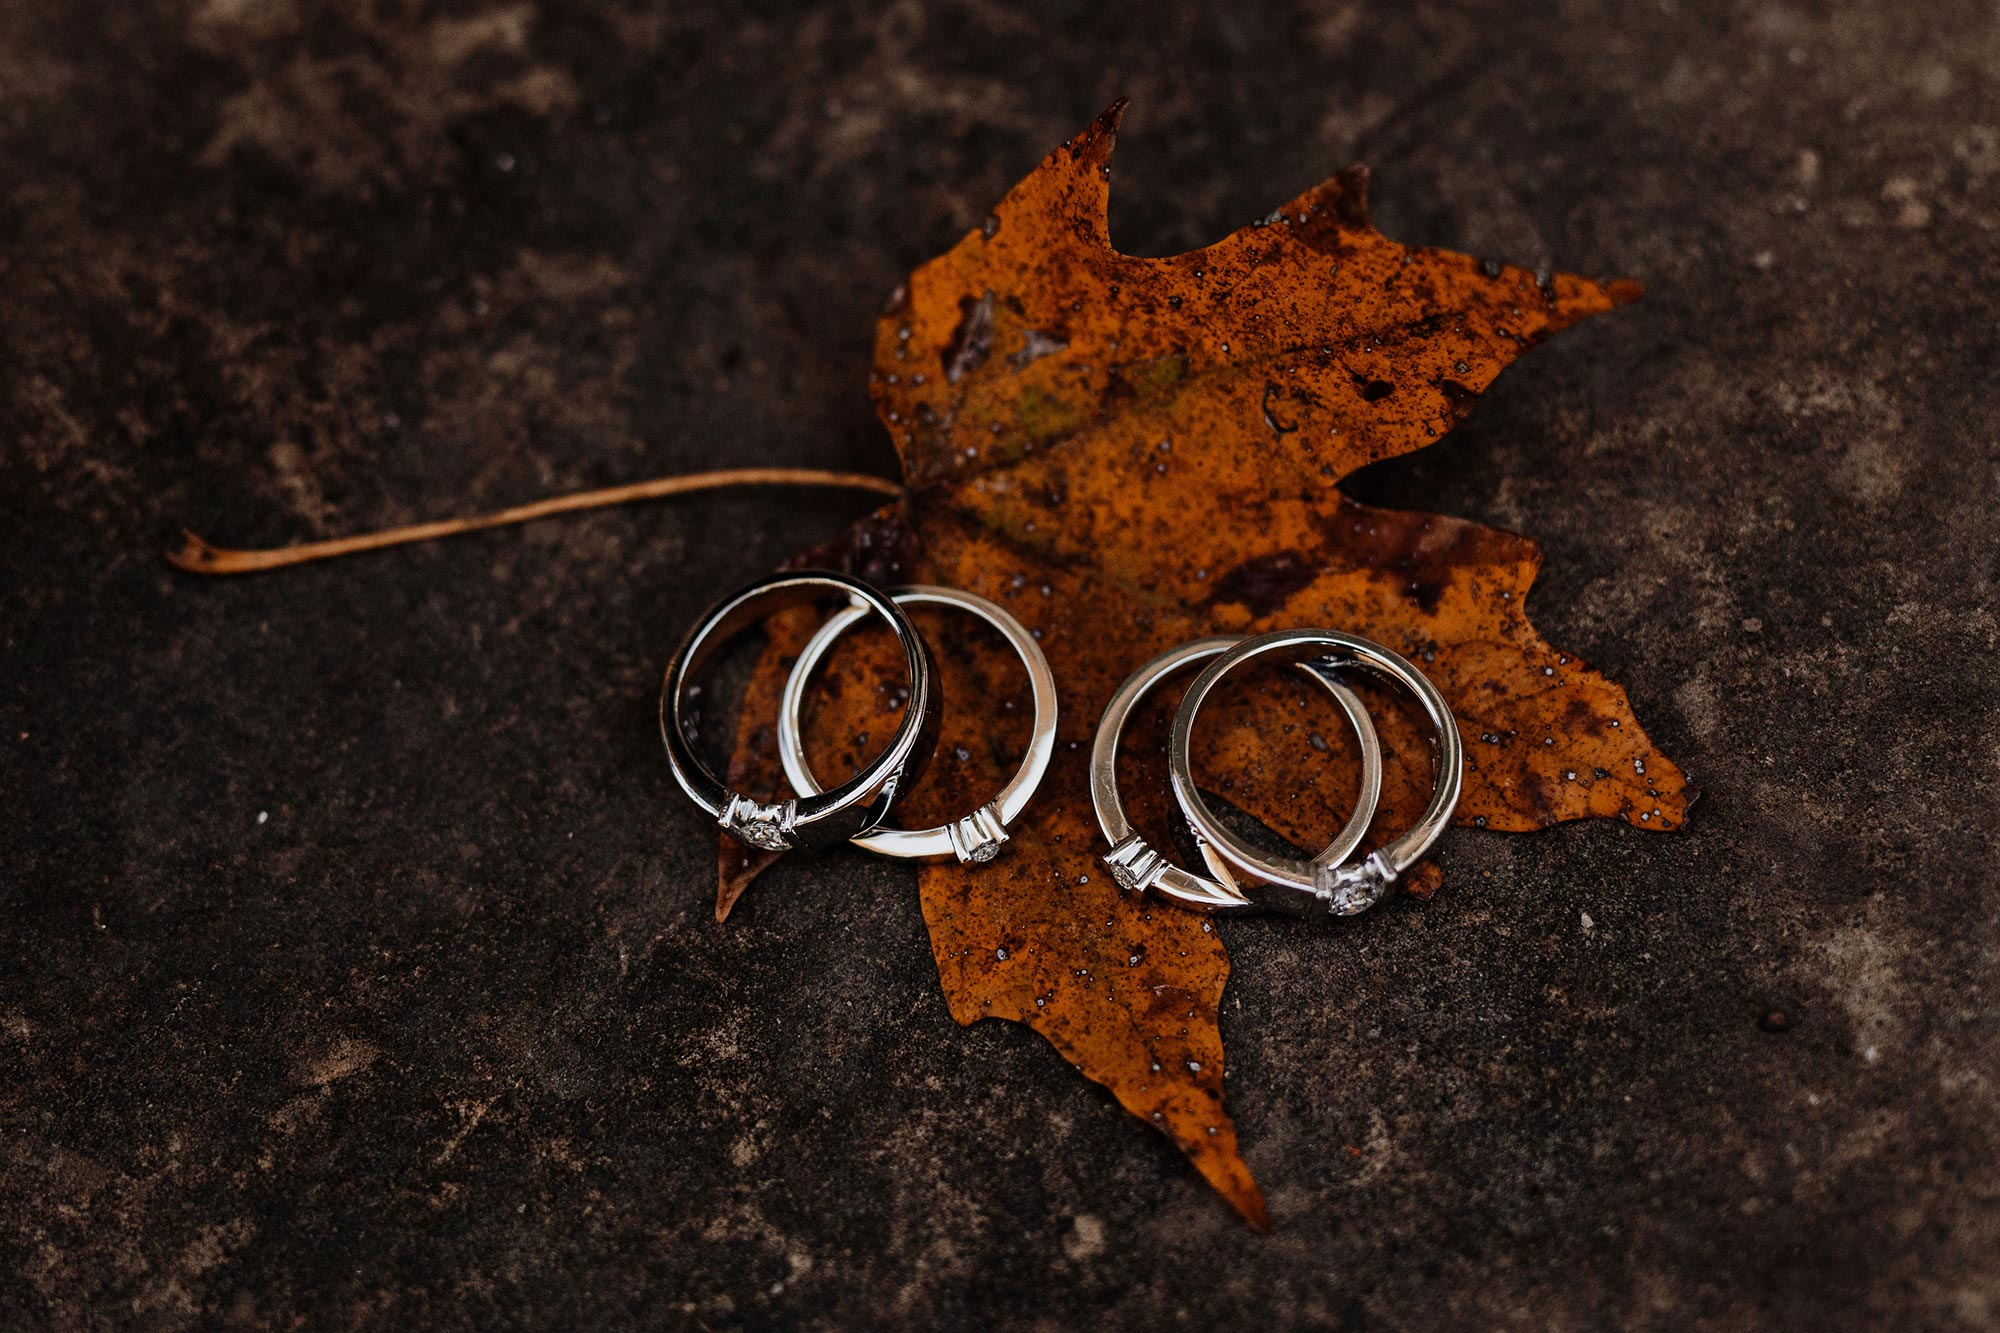 LGBTQ Louisville Kentucky Wedding at Hermitage Farm Crystal Ludwick Photo wedding rings on leaf